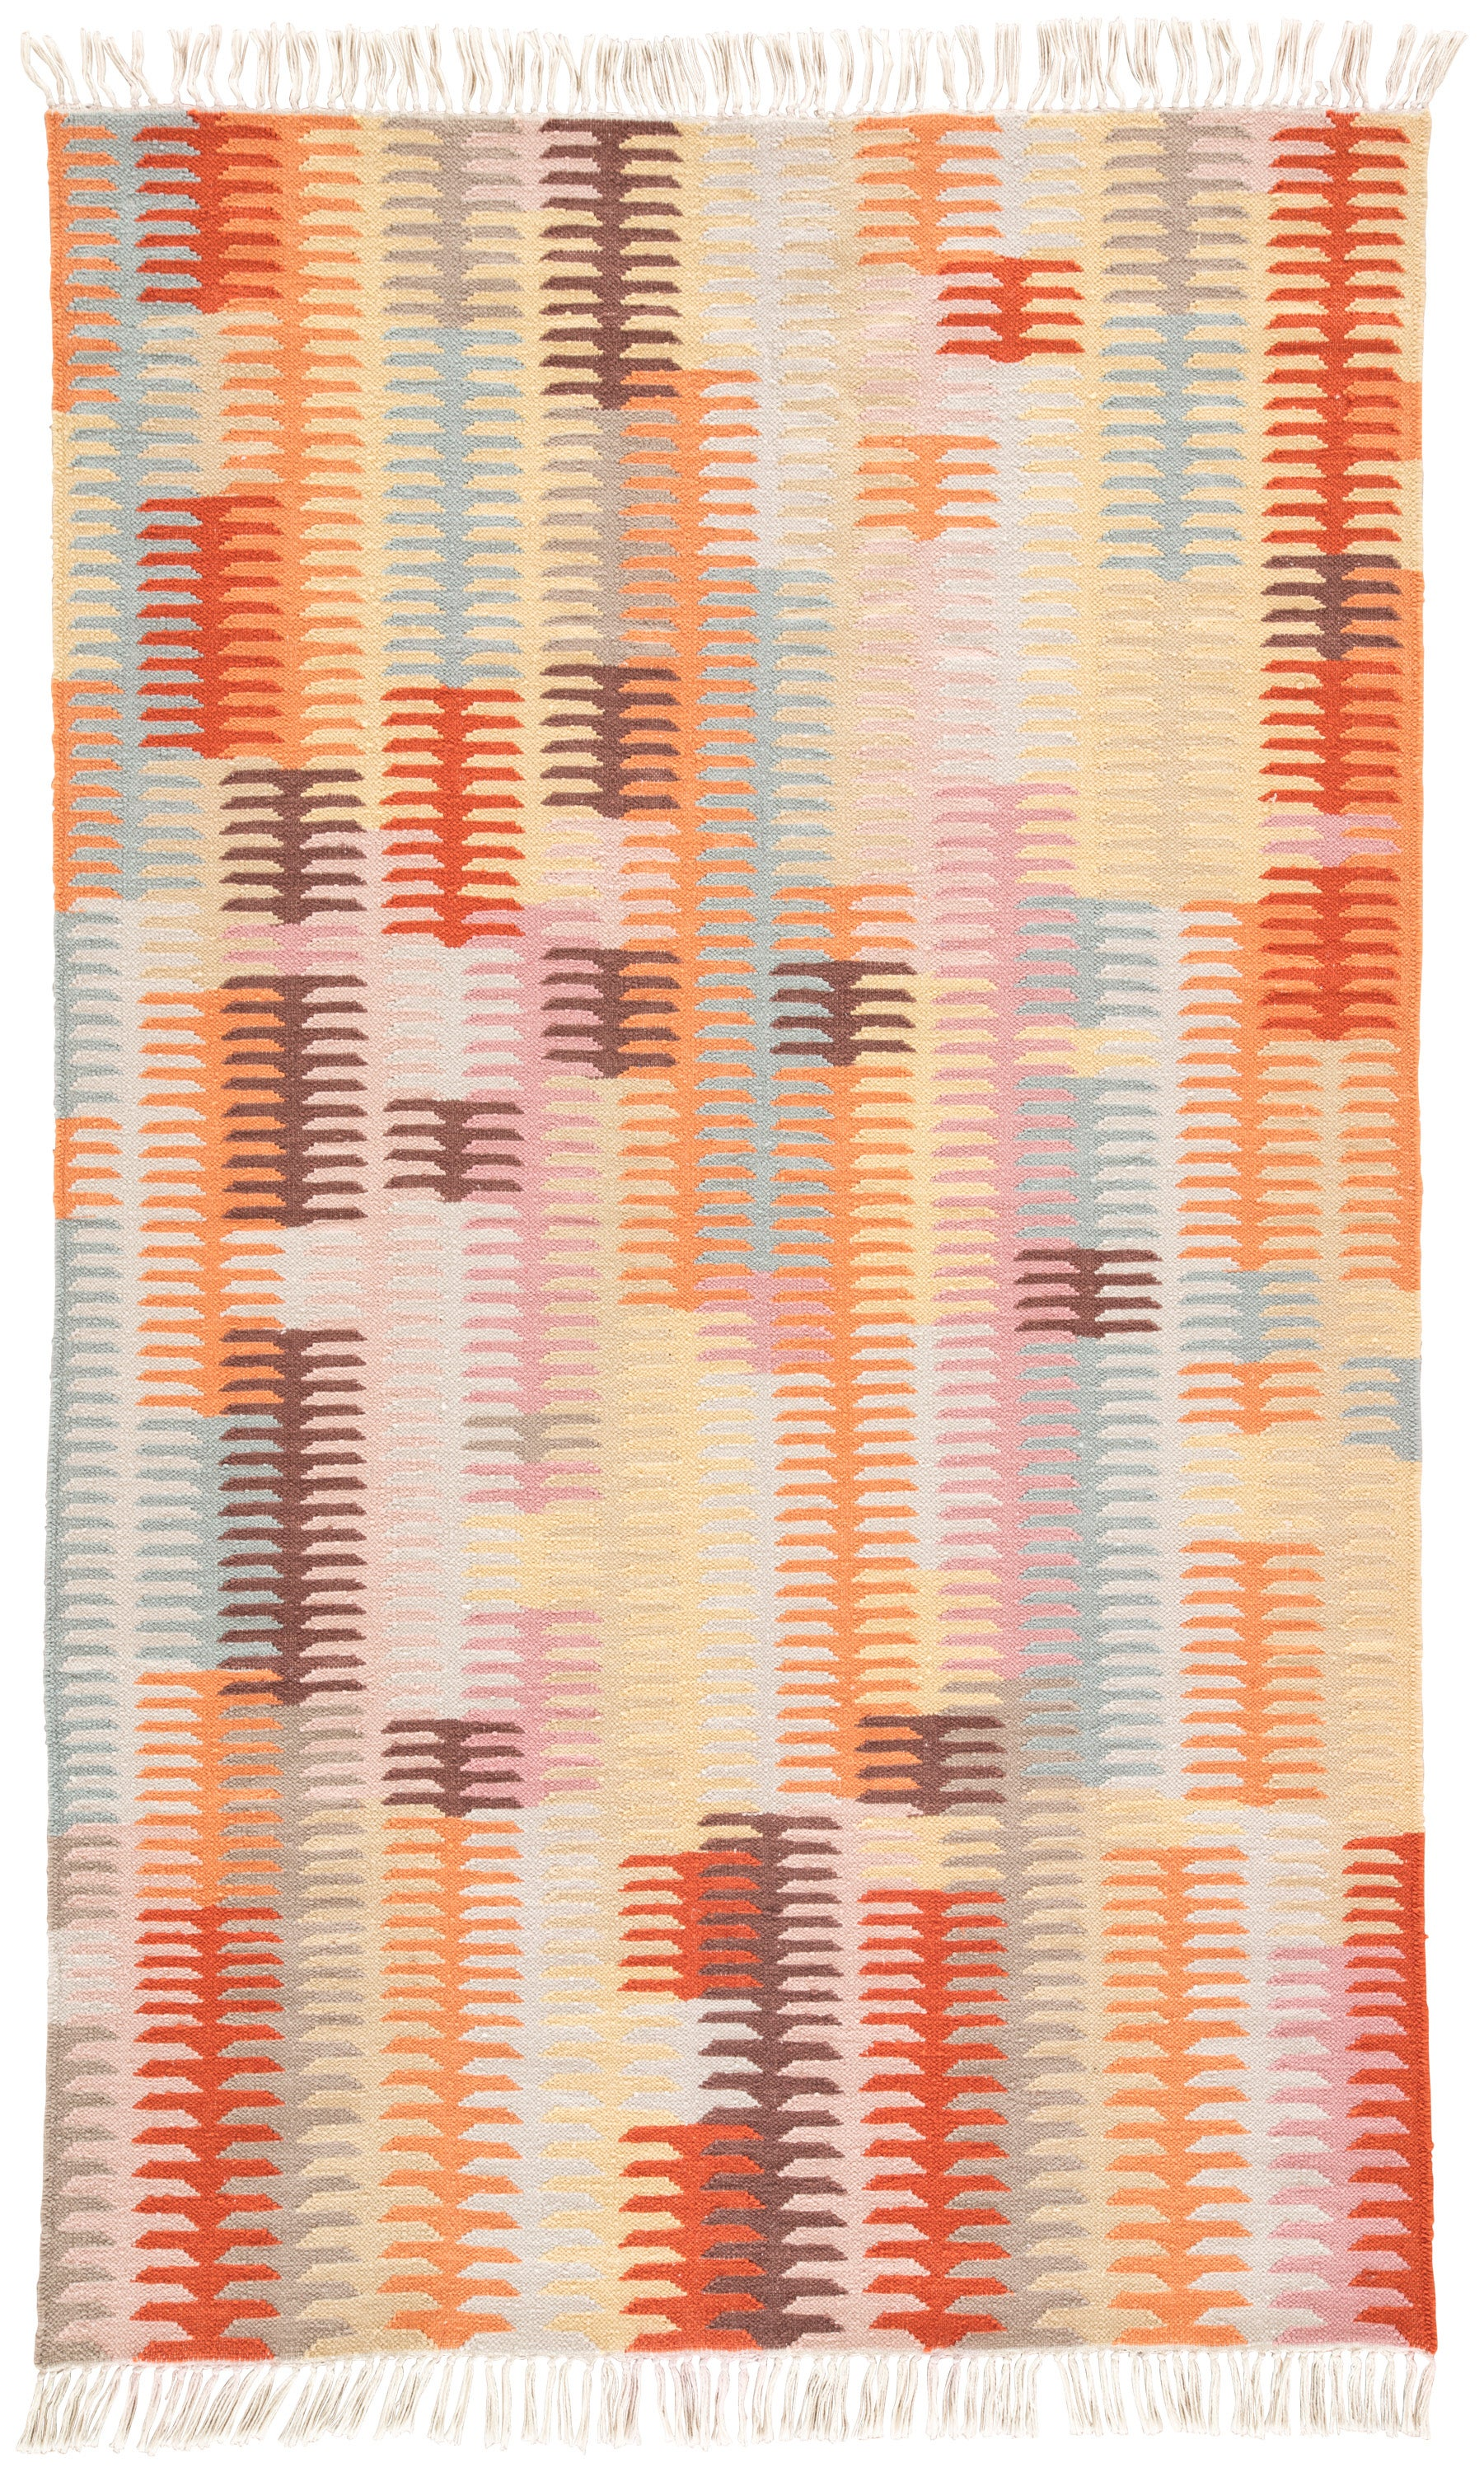 Rectangle 5x8 Orange Abstract Hand Woven Synthetics Southwestern recommended for Bedroom, Bathroom, Outdoor, Dining Room, Office, Hallway, Living Room